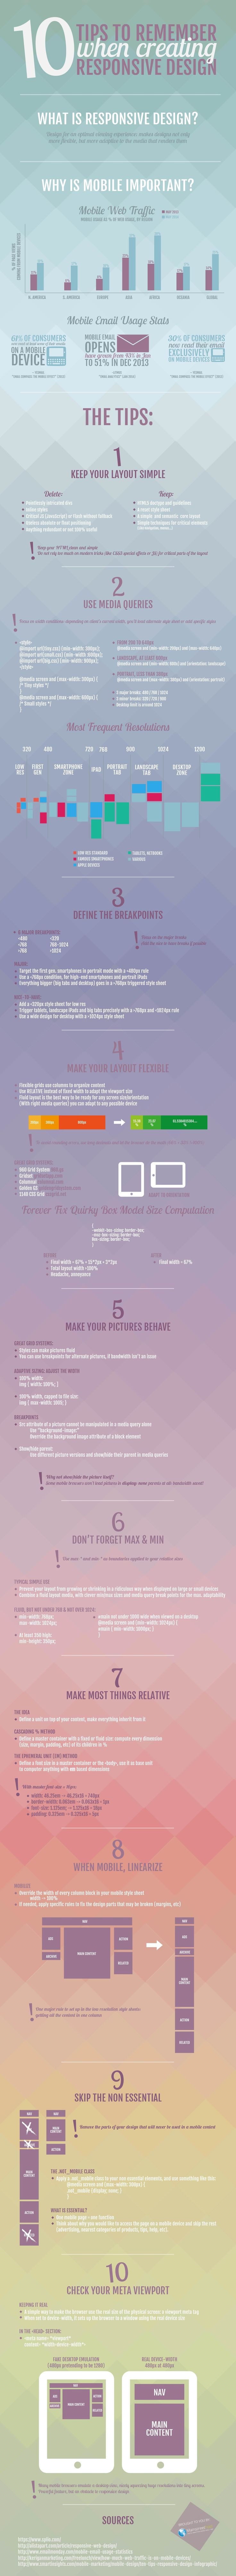 10 Tips to create effective responsive design - #Infographic